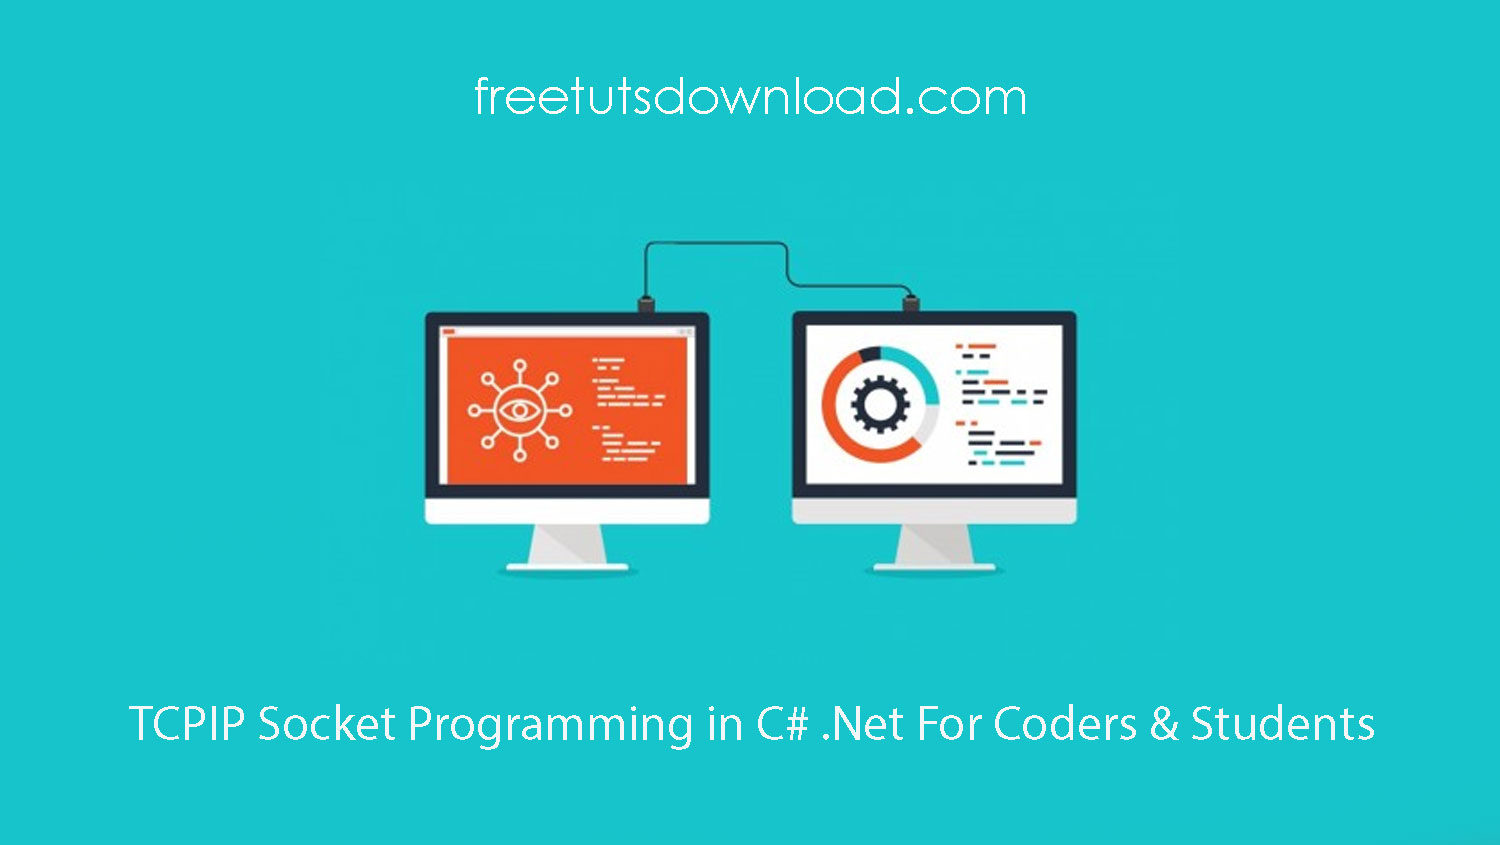 TCPIP Socket Programming in C# .Net For Coders & Students free download